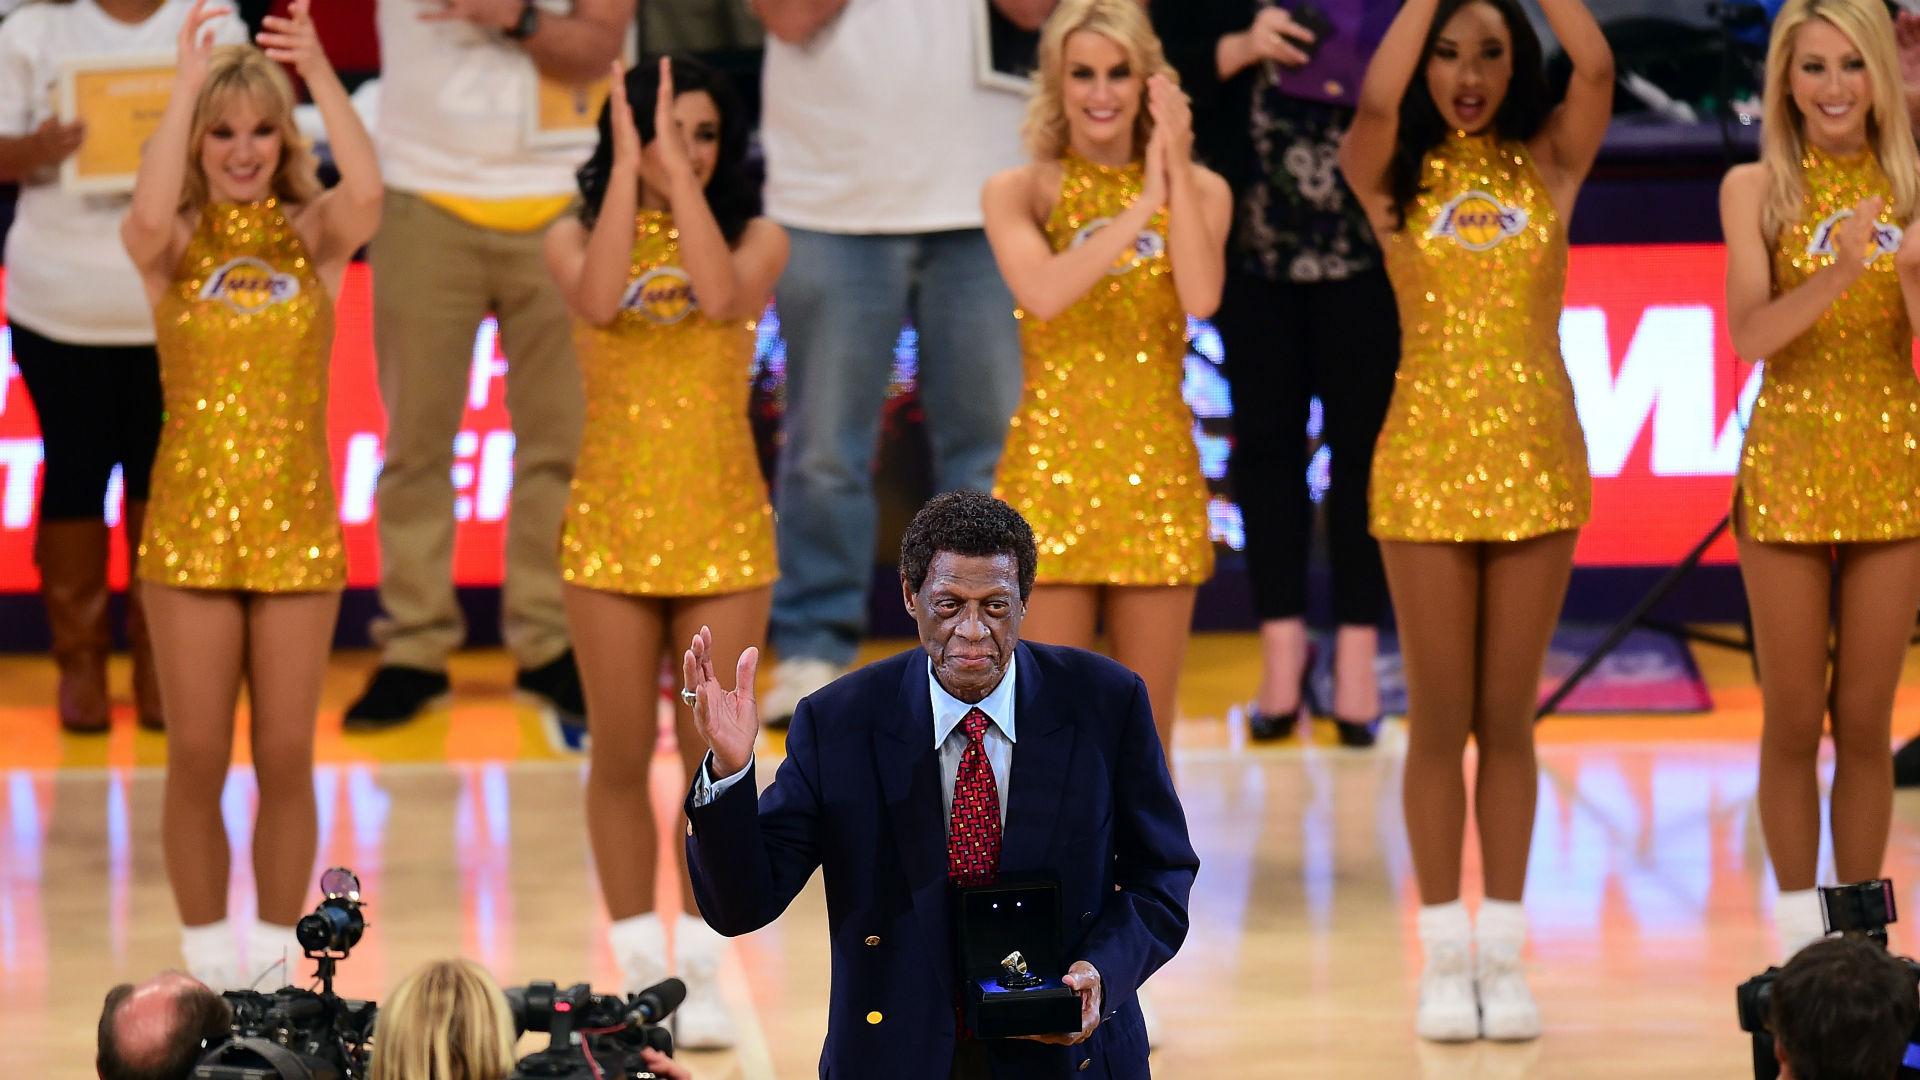 Elgin Baylor Honored by Lakers with Statue at Staples Center